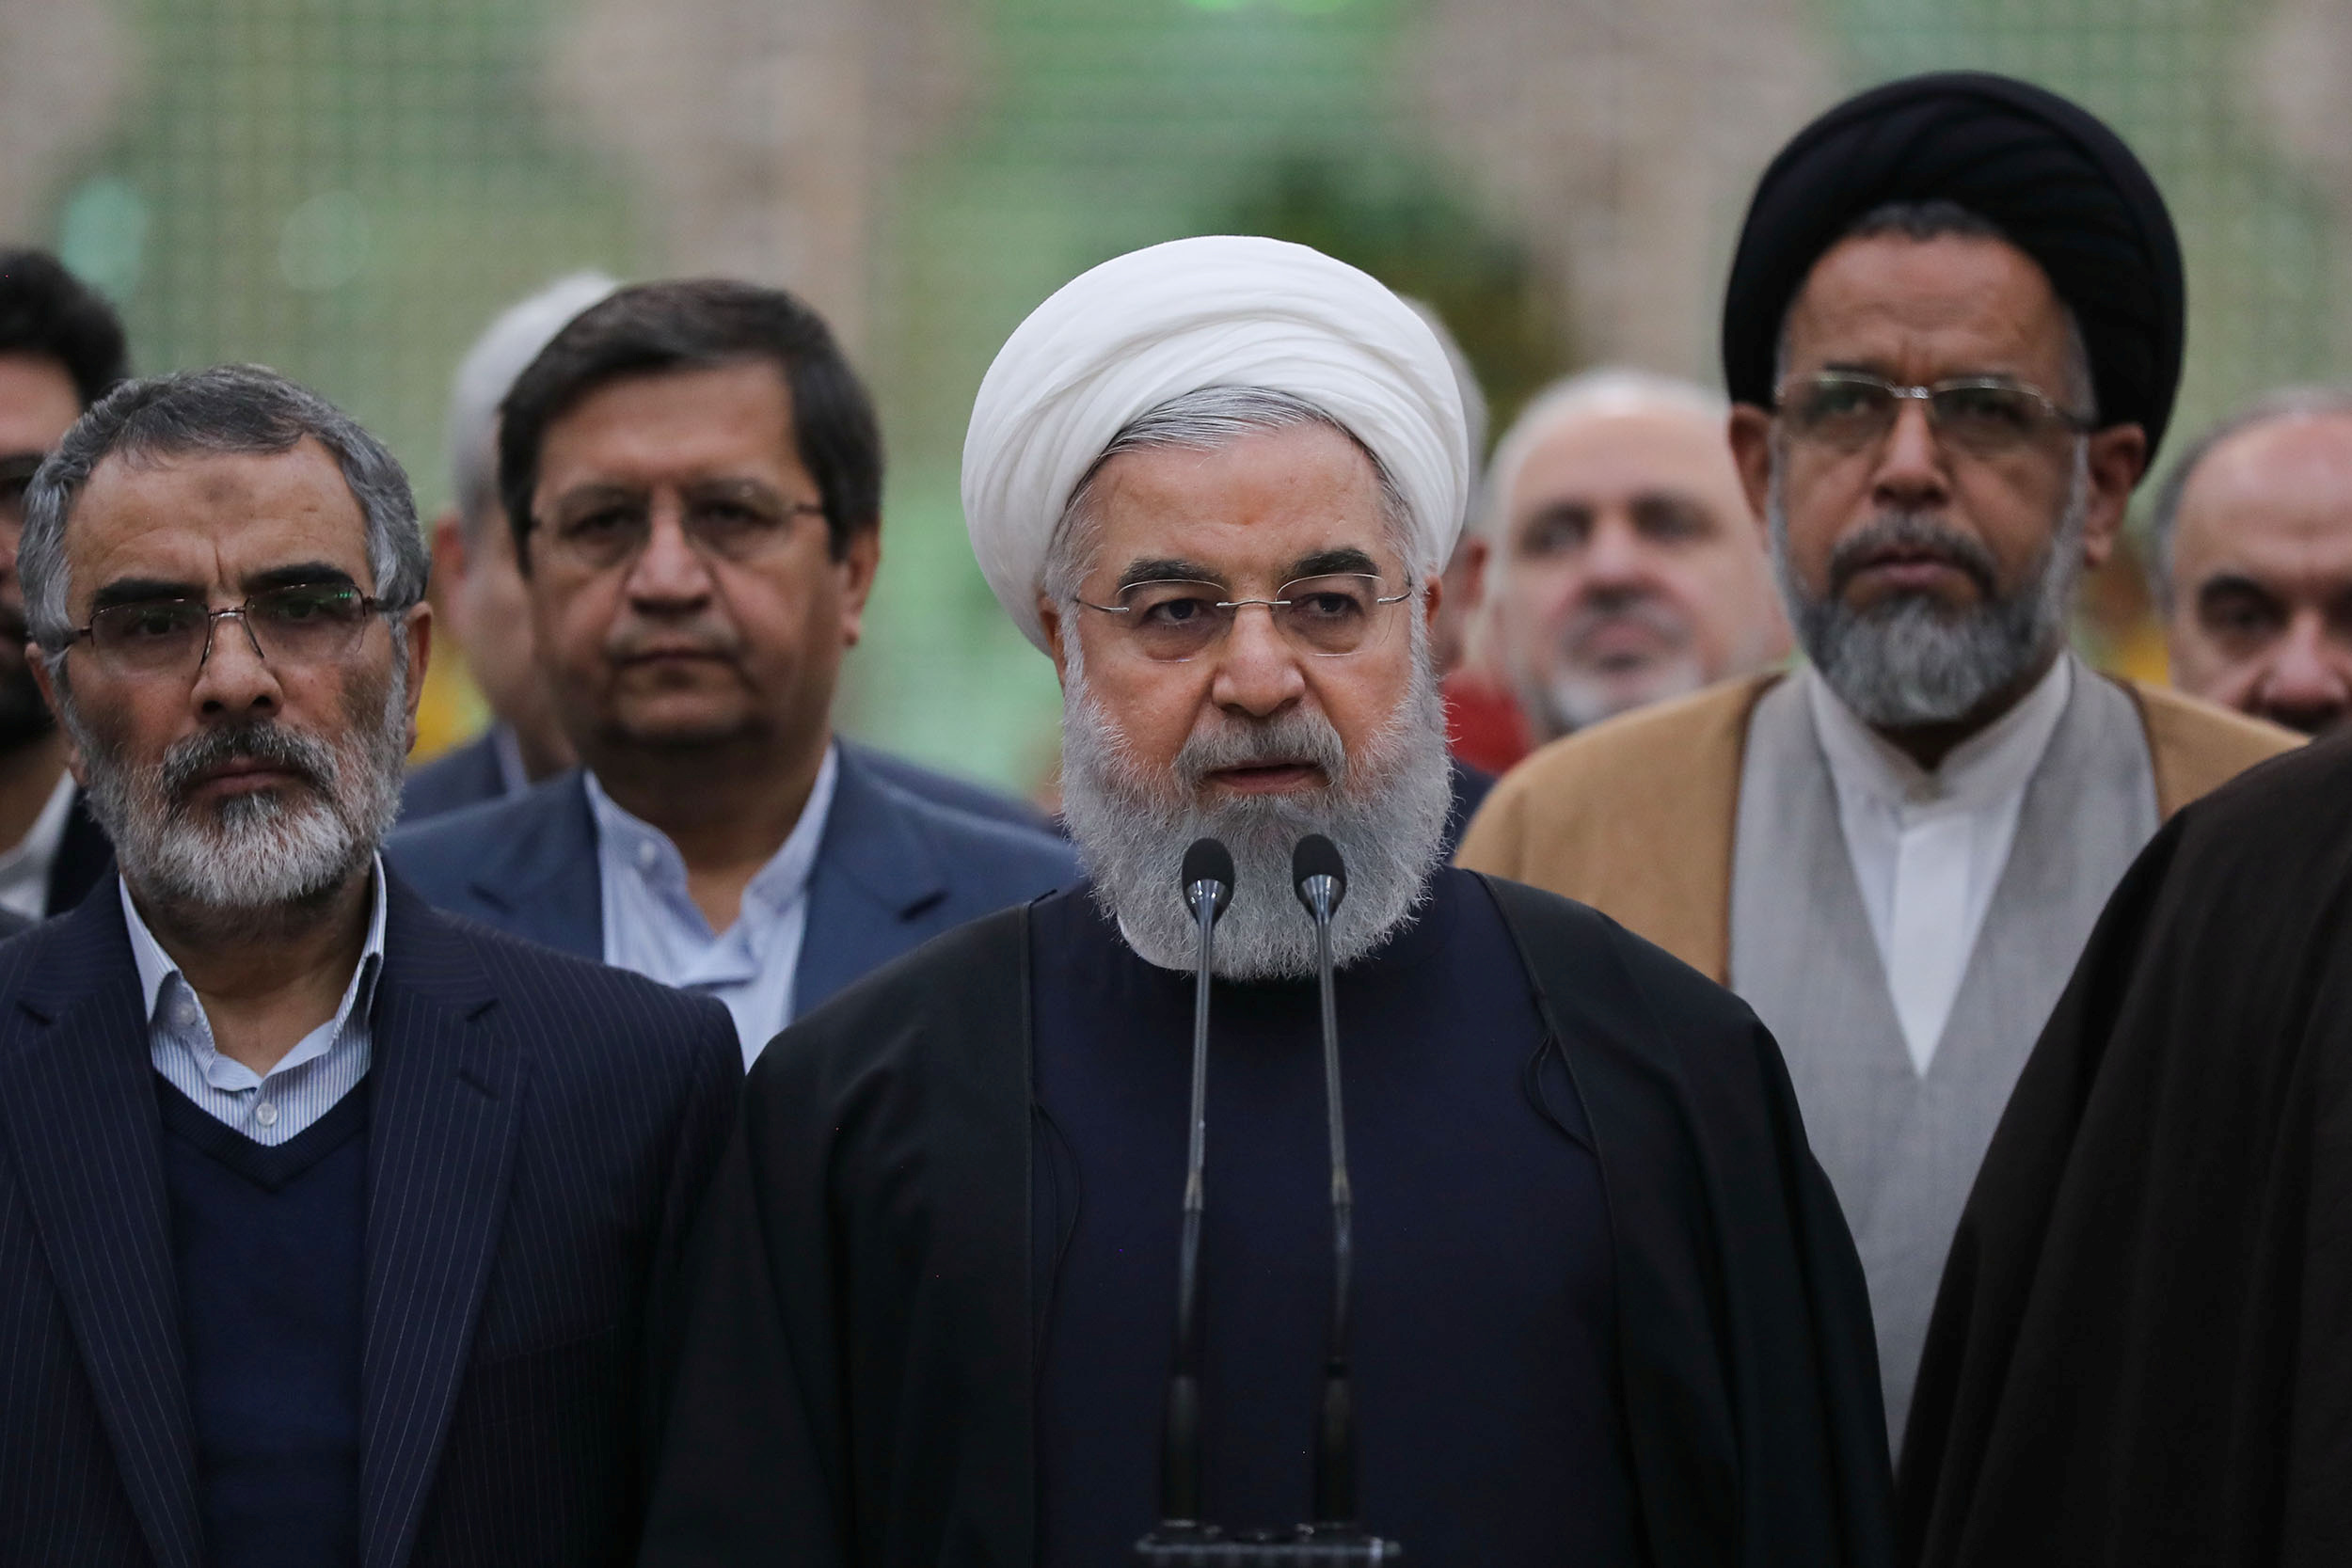 Iran's President Hassan Rouhani speaks during his visit to the shrine of the founder of the Islamic Republic, Ayatollah Ruhollah Khomeini, south of Tehran, Iran, January 30, 2019. Official President website/Handout via REUTERS